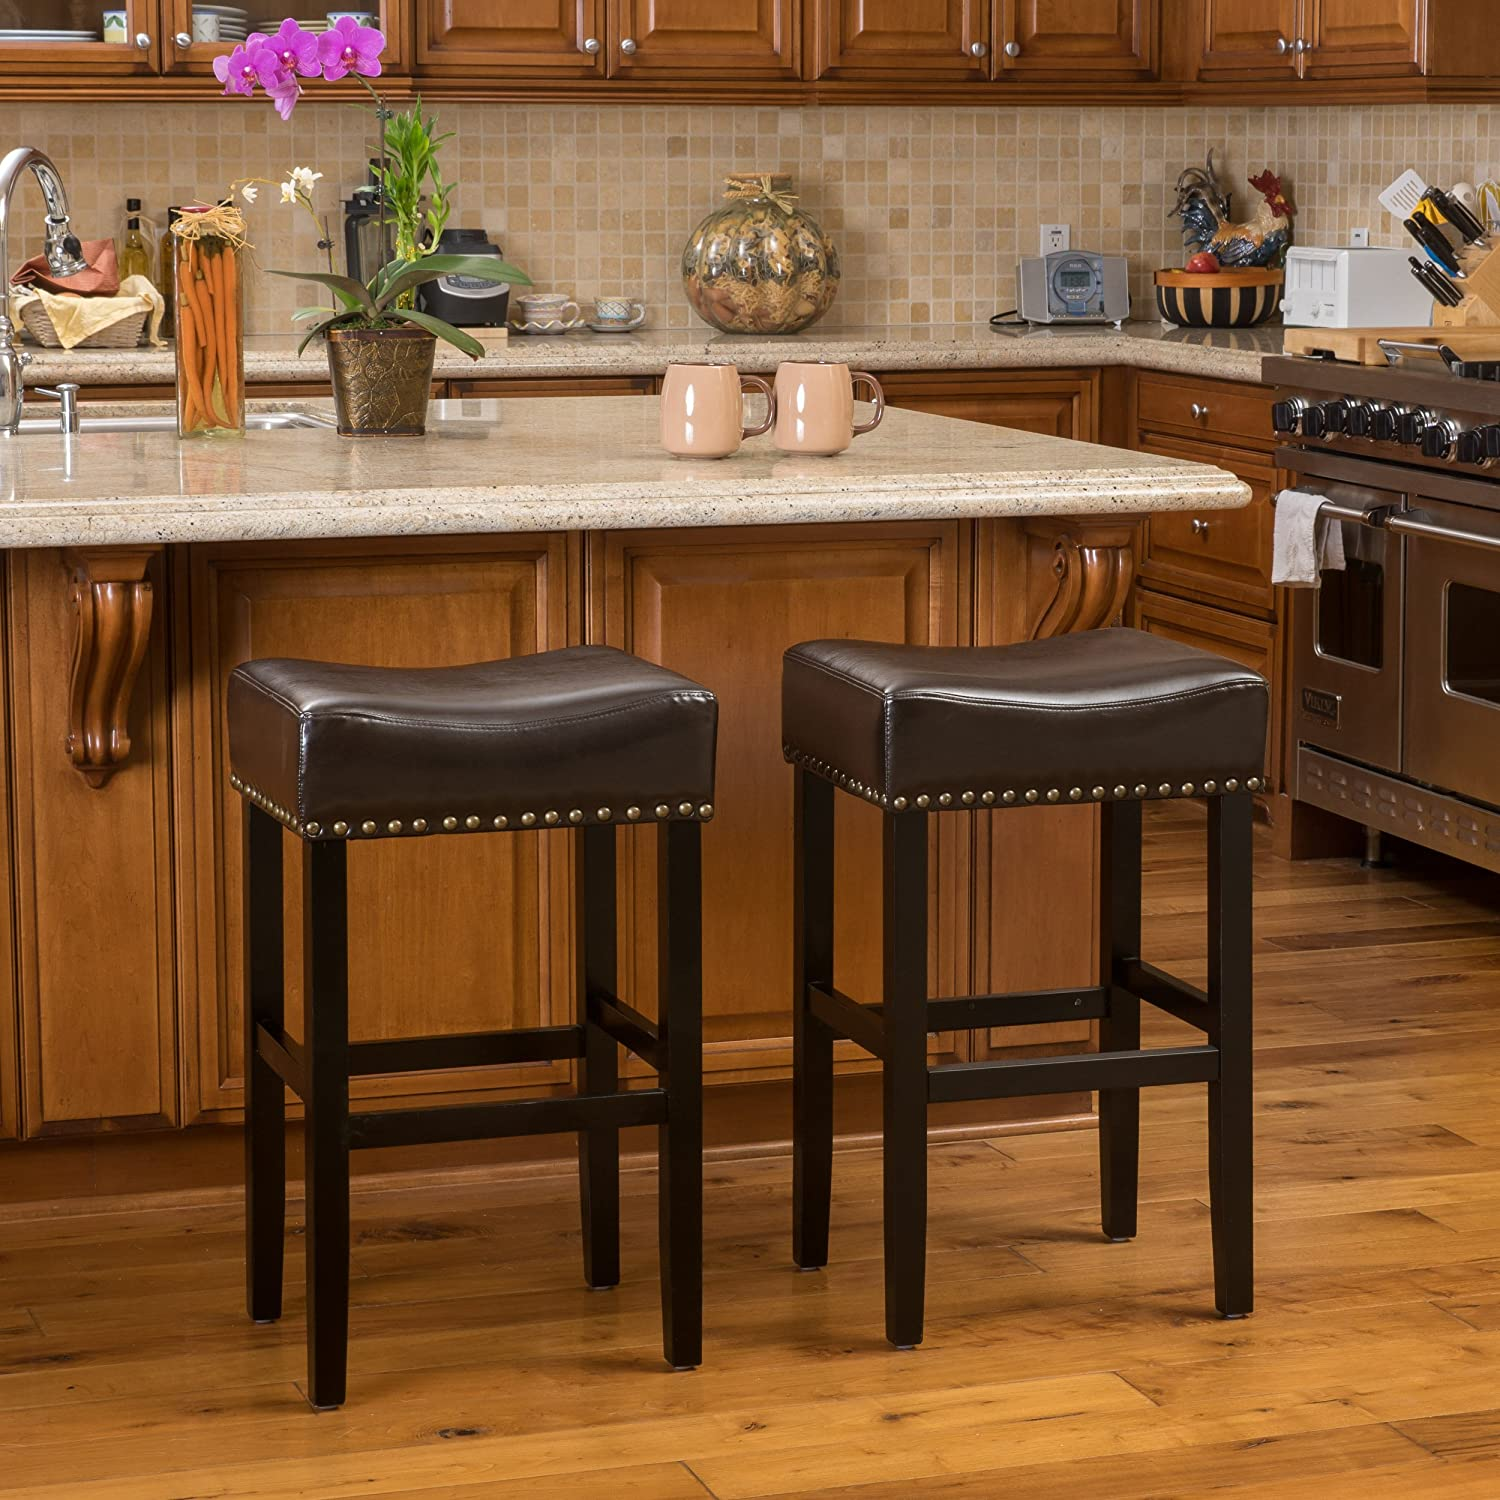 Christopher Knight Home 238537 Chantal Brown Leather Bar Stool (Set of 2)